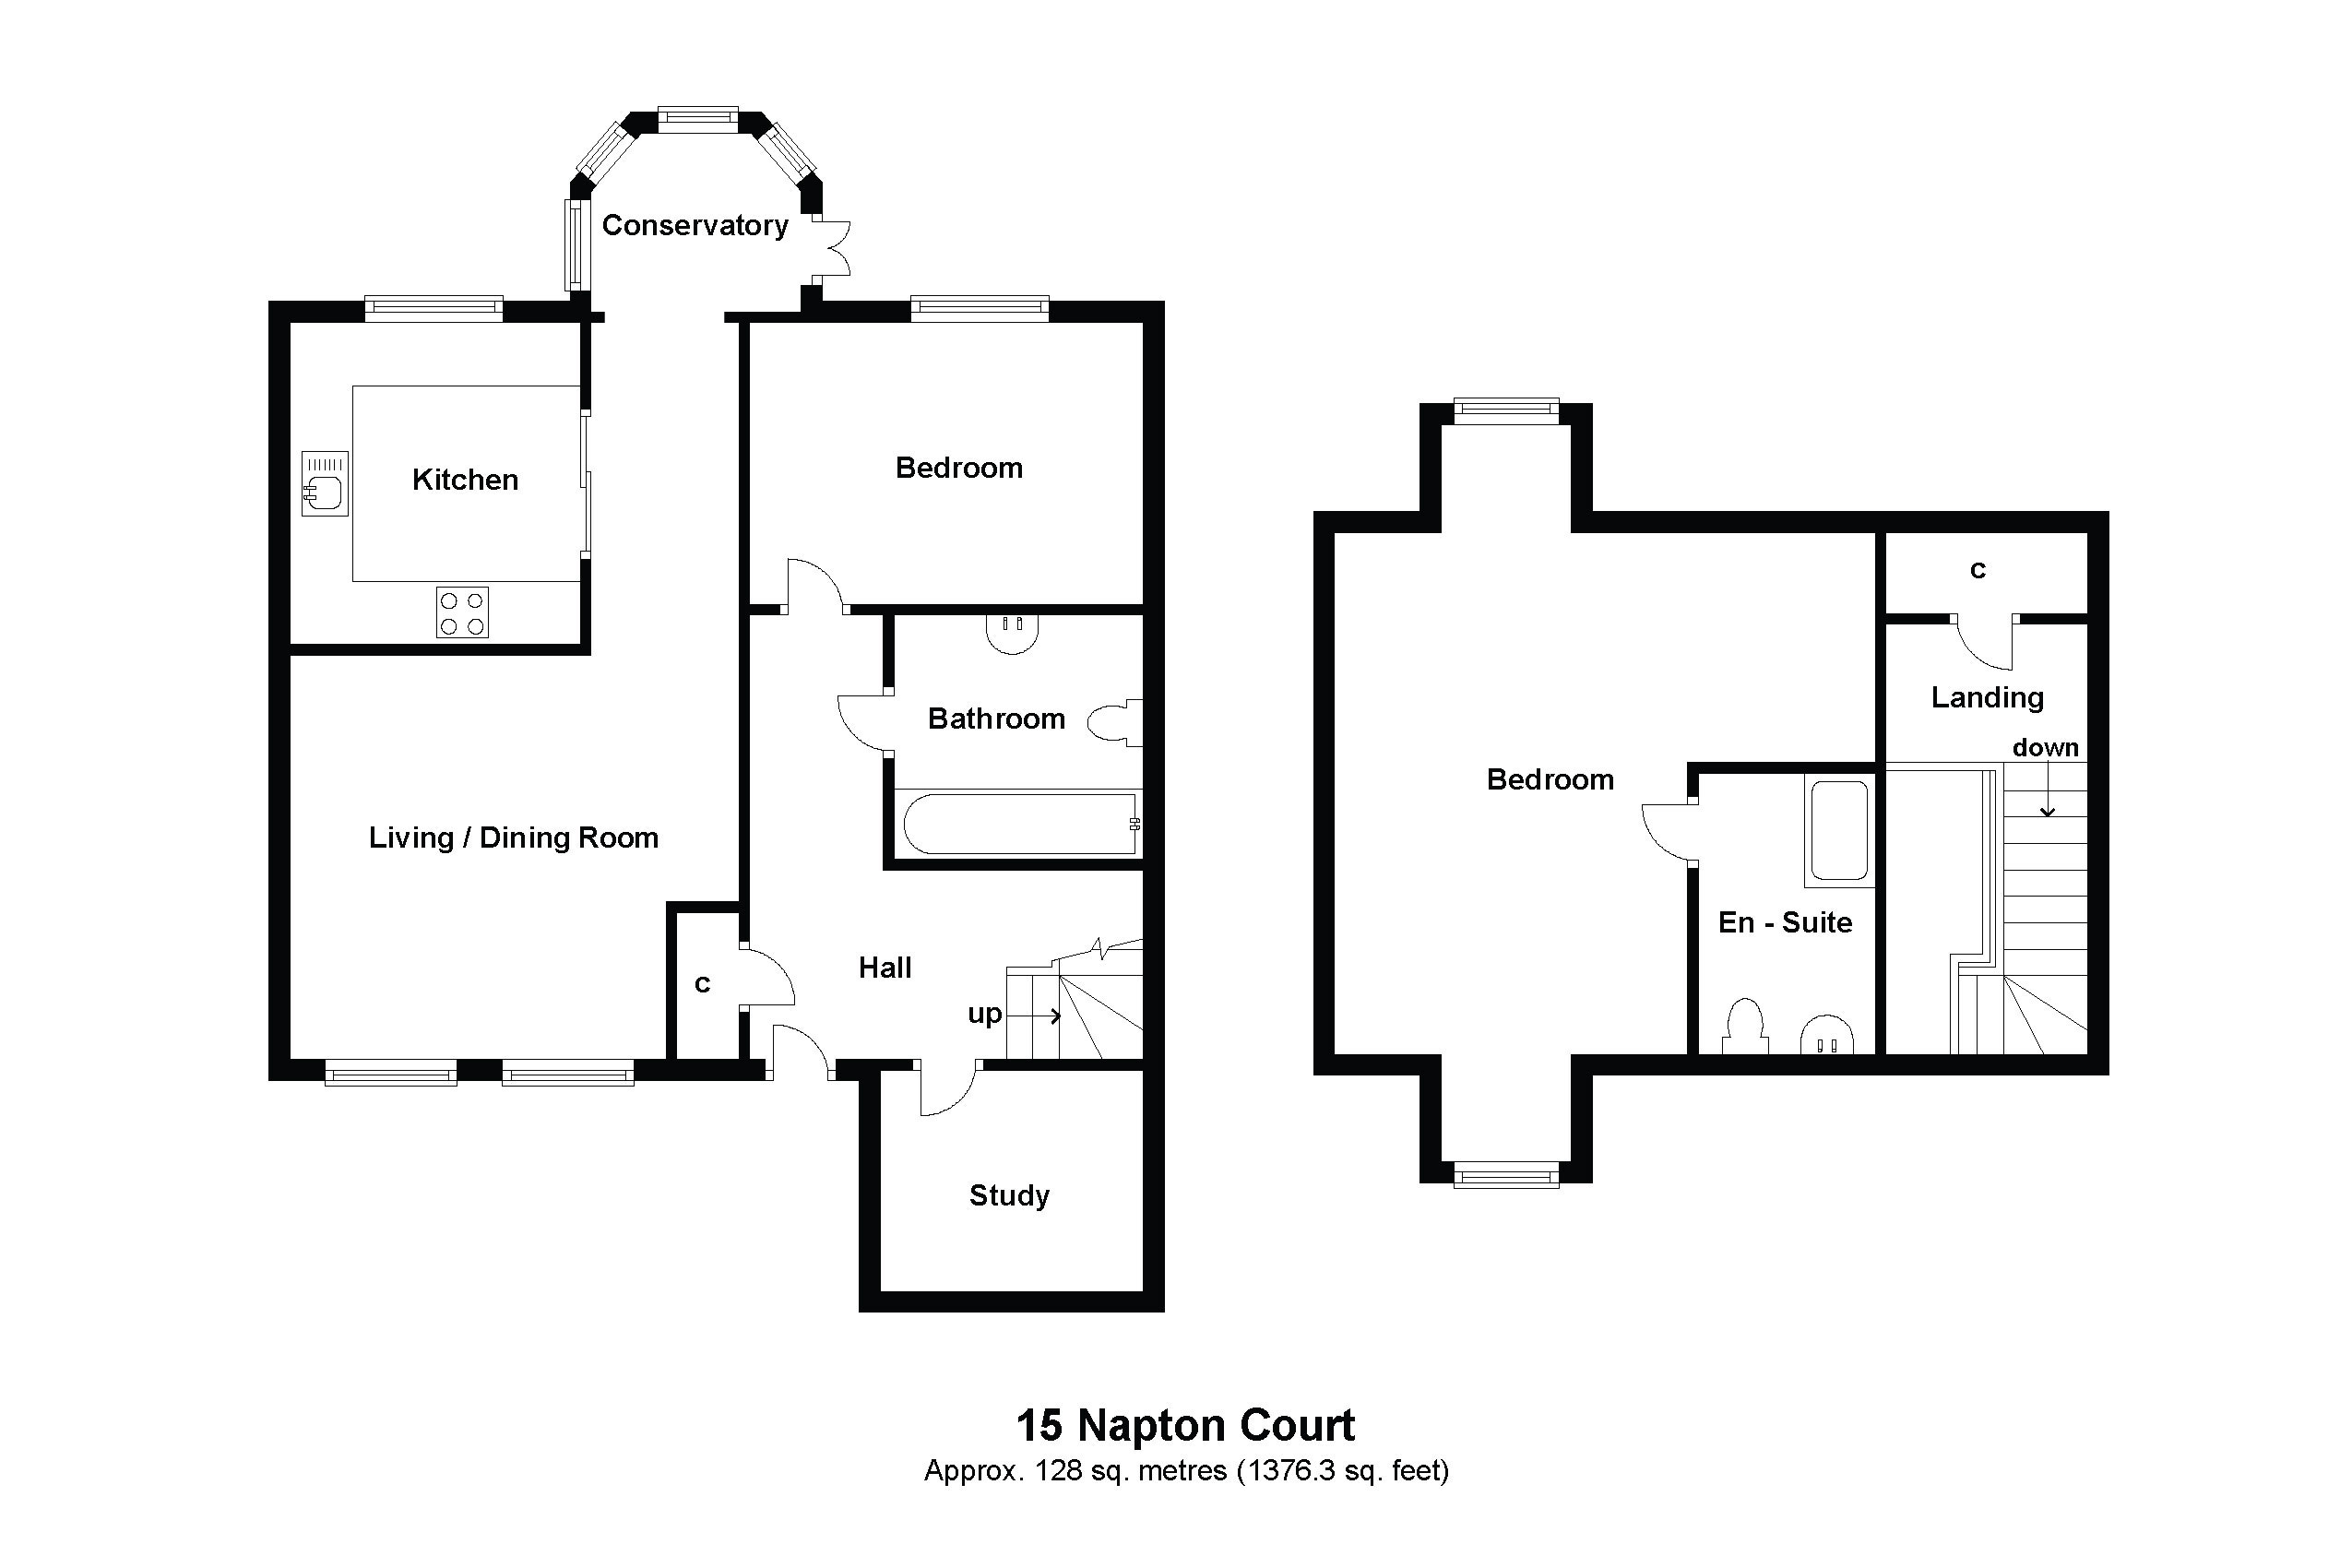 15 Napton Court Floorplan